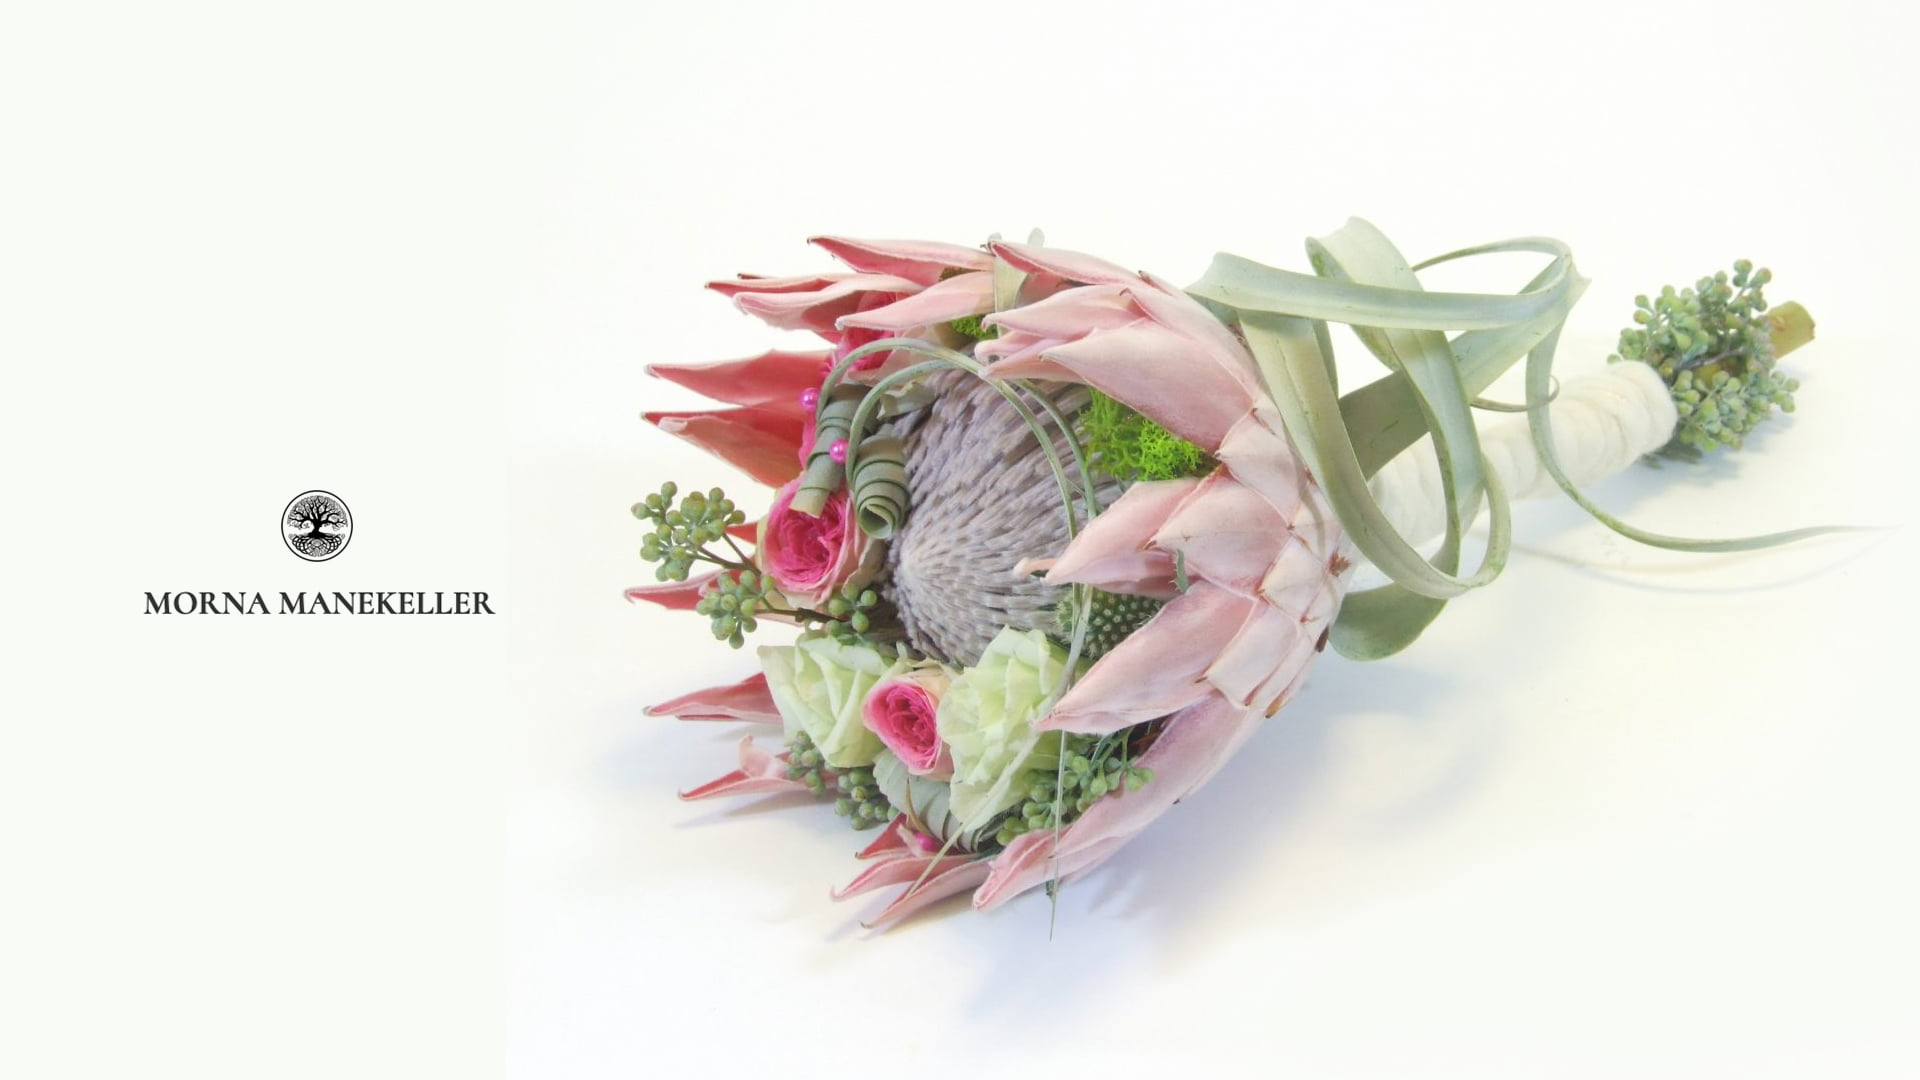 Morna Manekeller - Florists